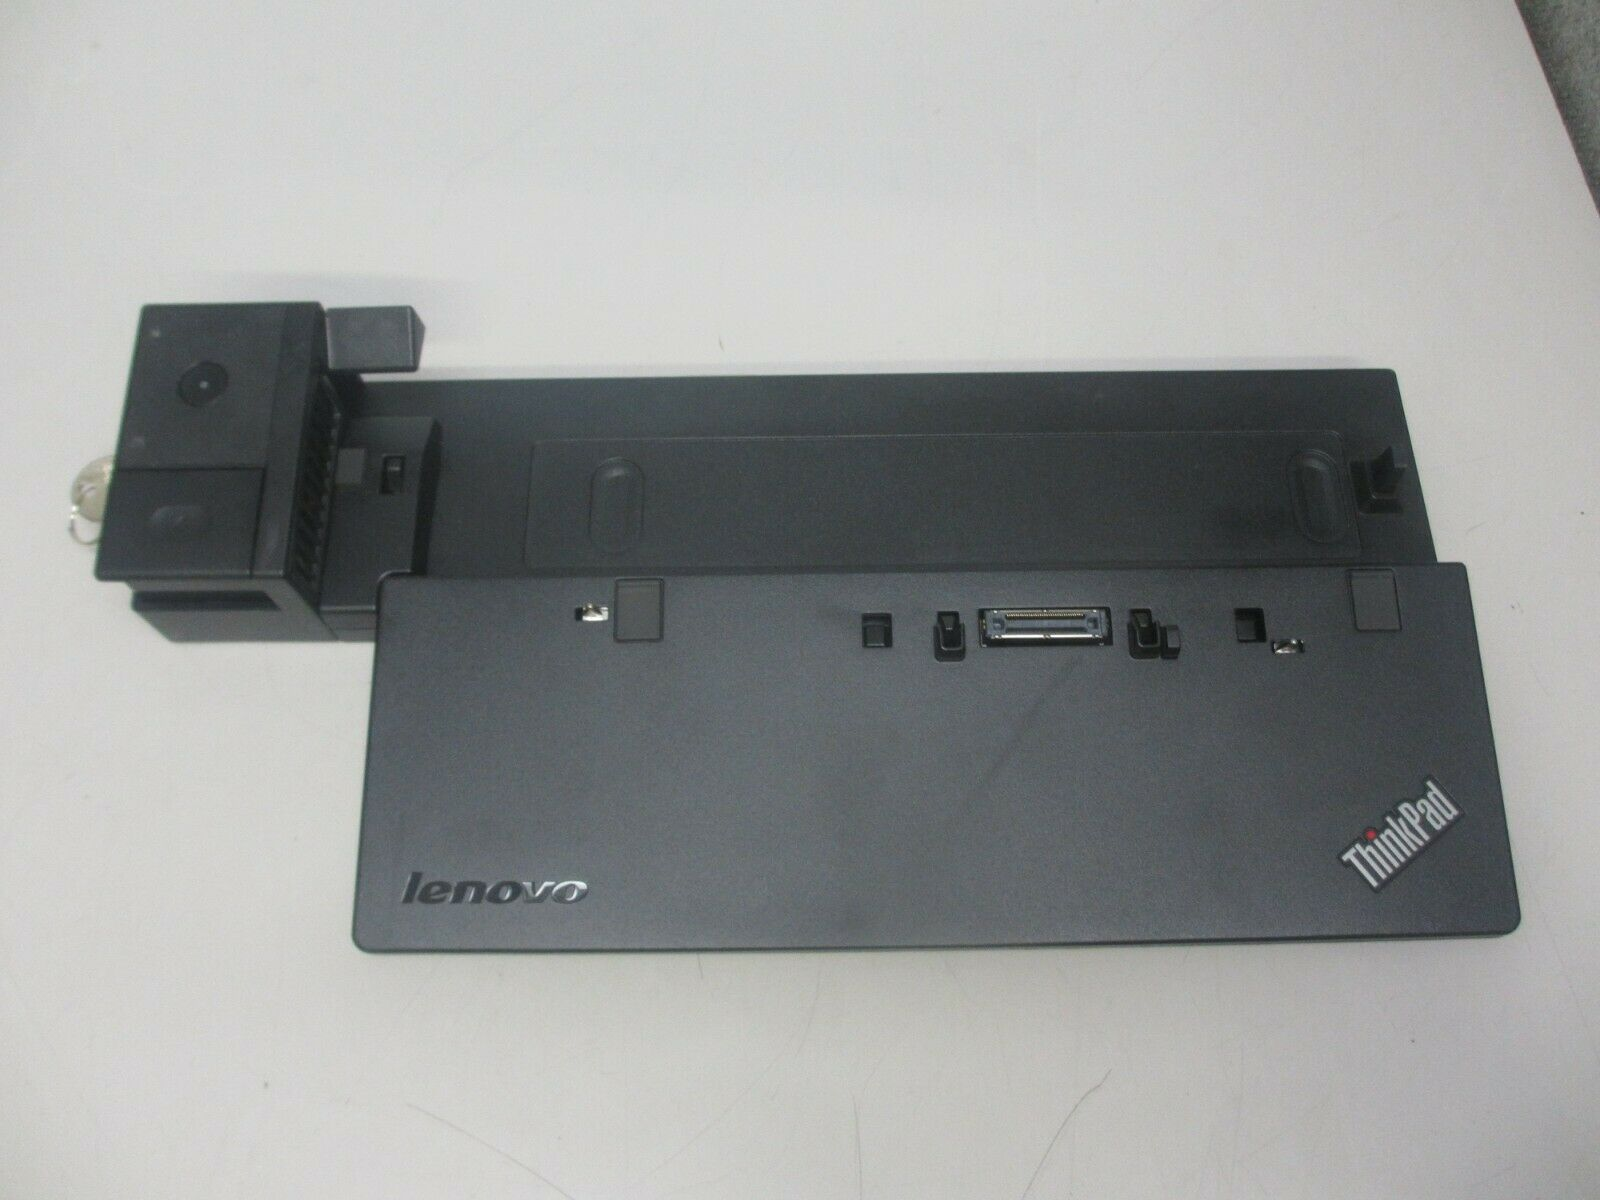 Lenovo Thinkpad Pro Dock 40A1 SD20A06042 Laptop Docking Station w/ Key